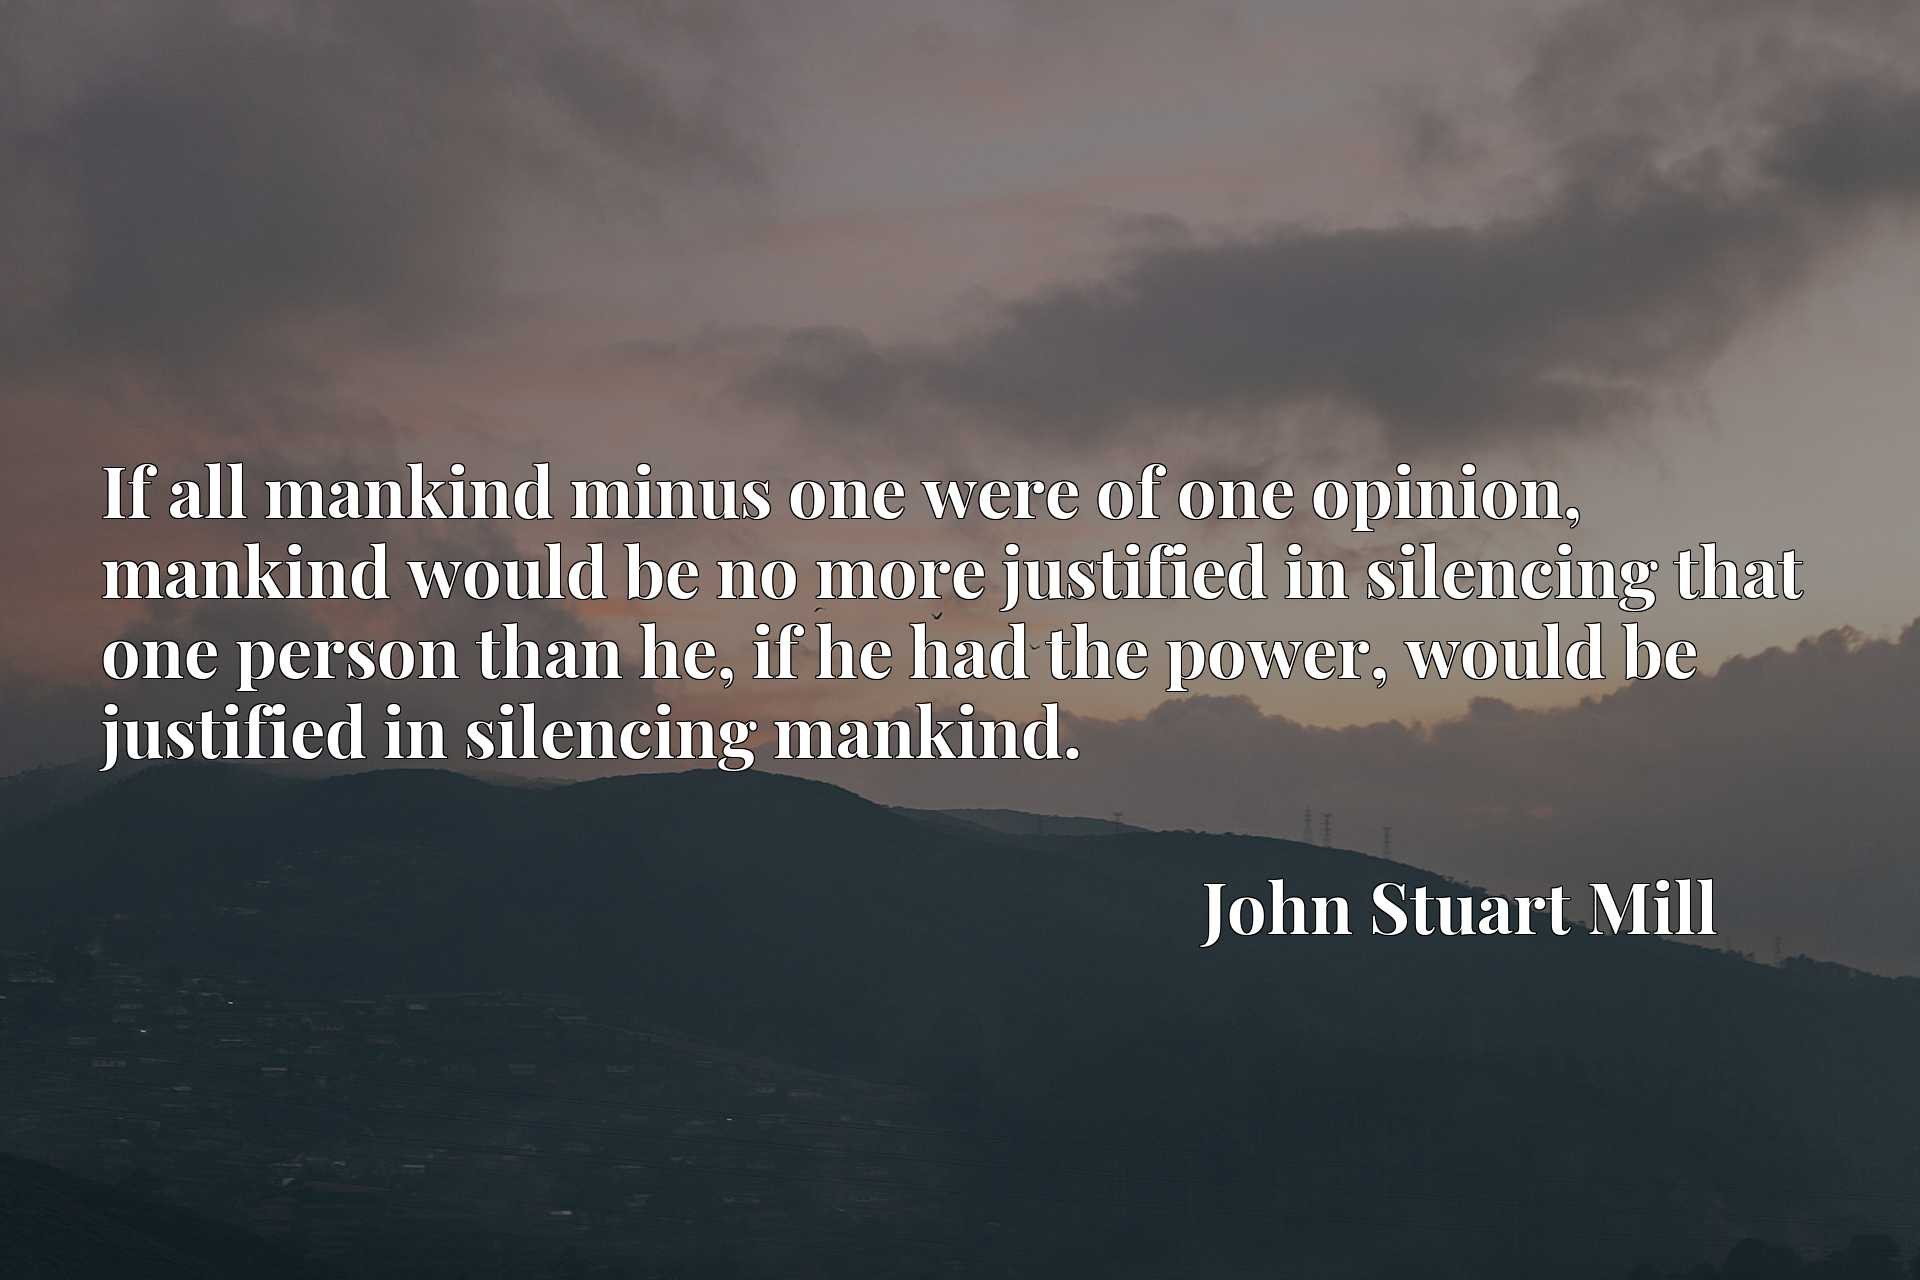 If all mankind minus one were of one opinion, mankind would be no more justified in silencing that one person than he, if he had the power, would be justified in silencing mankind.